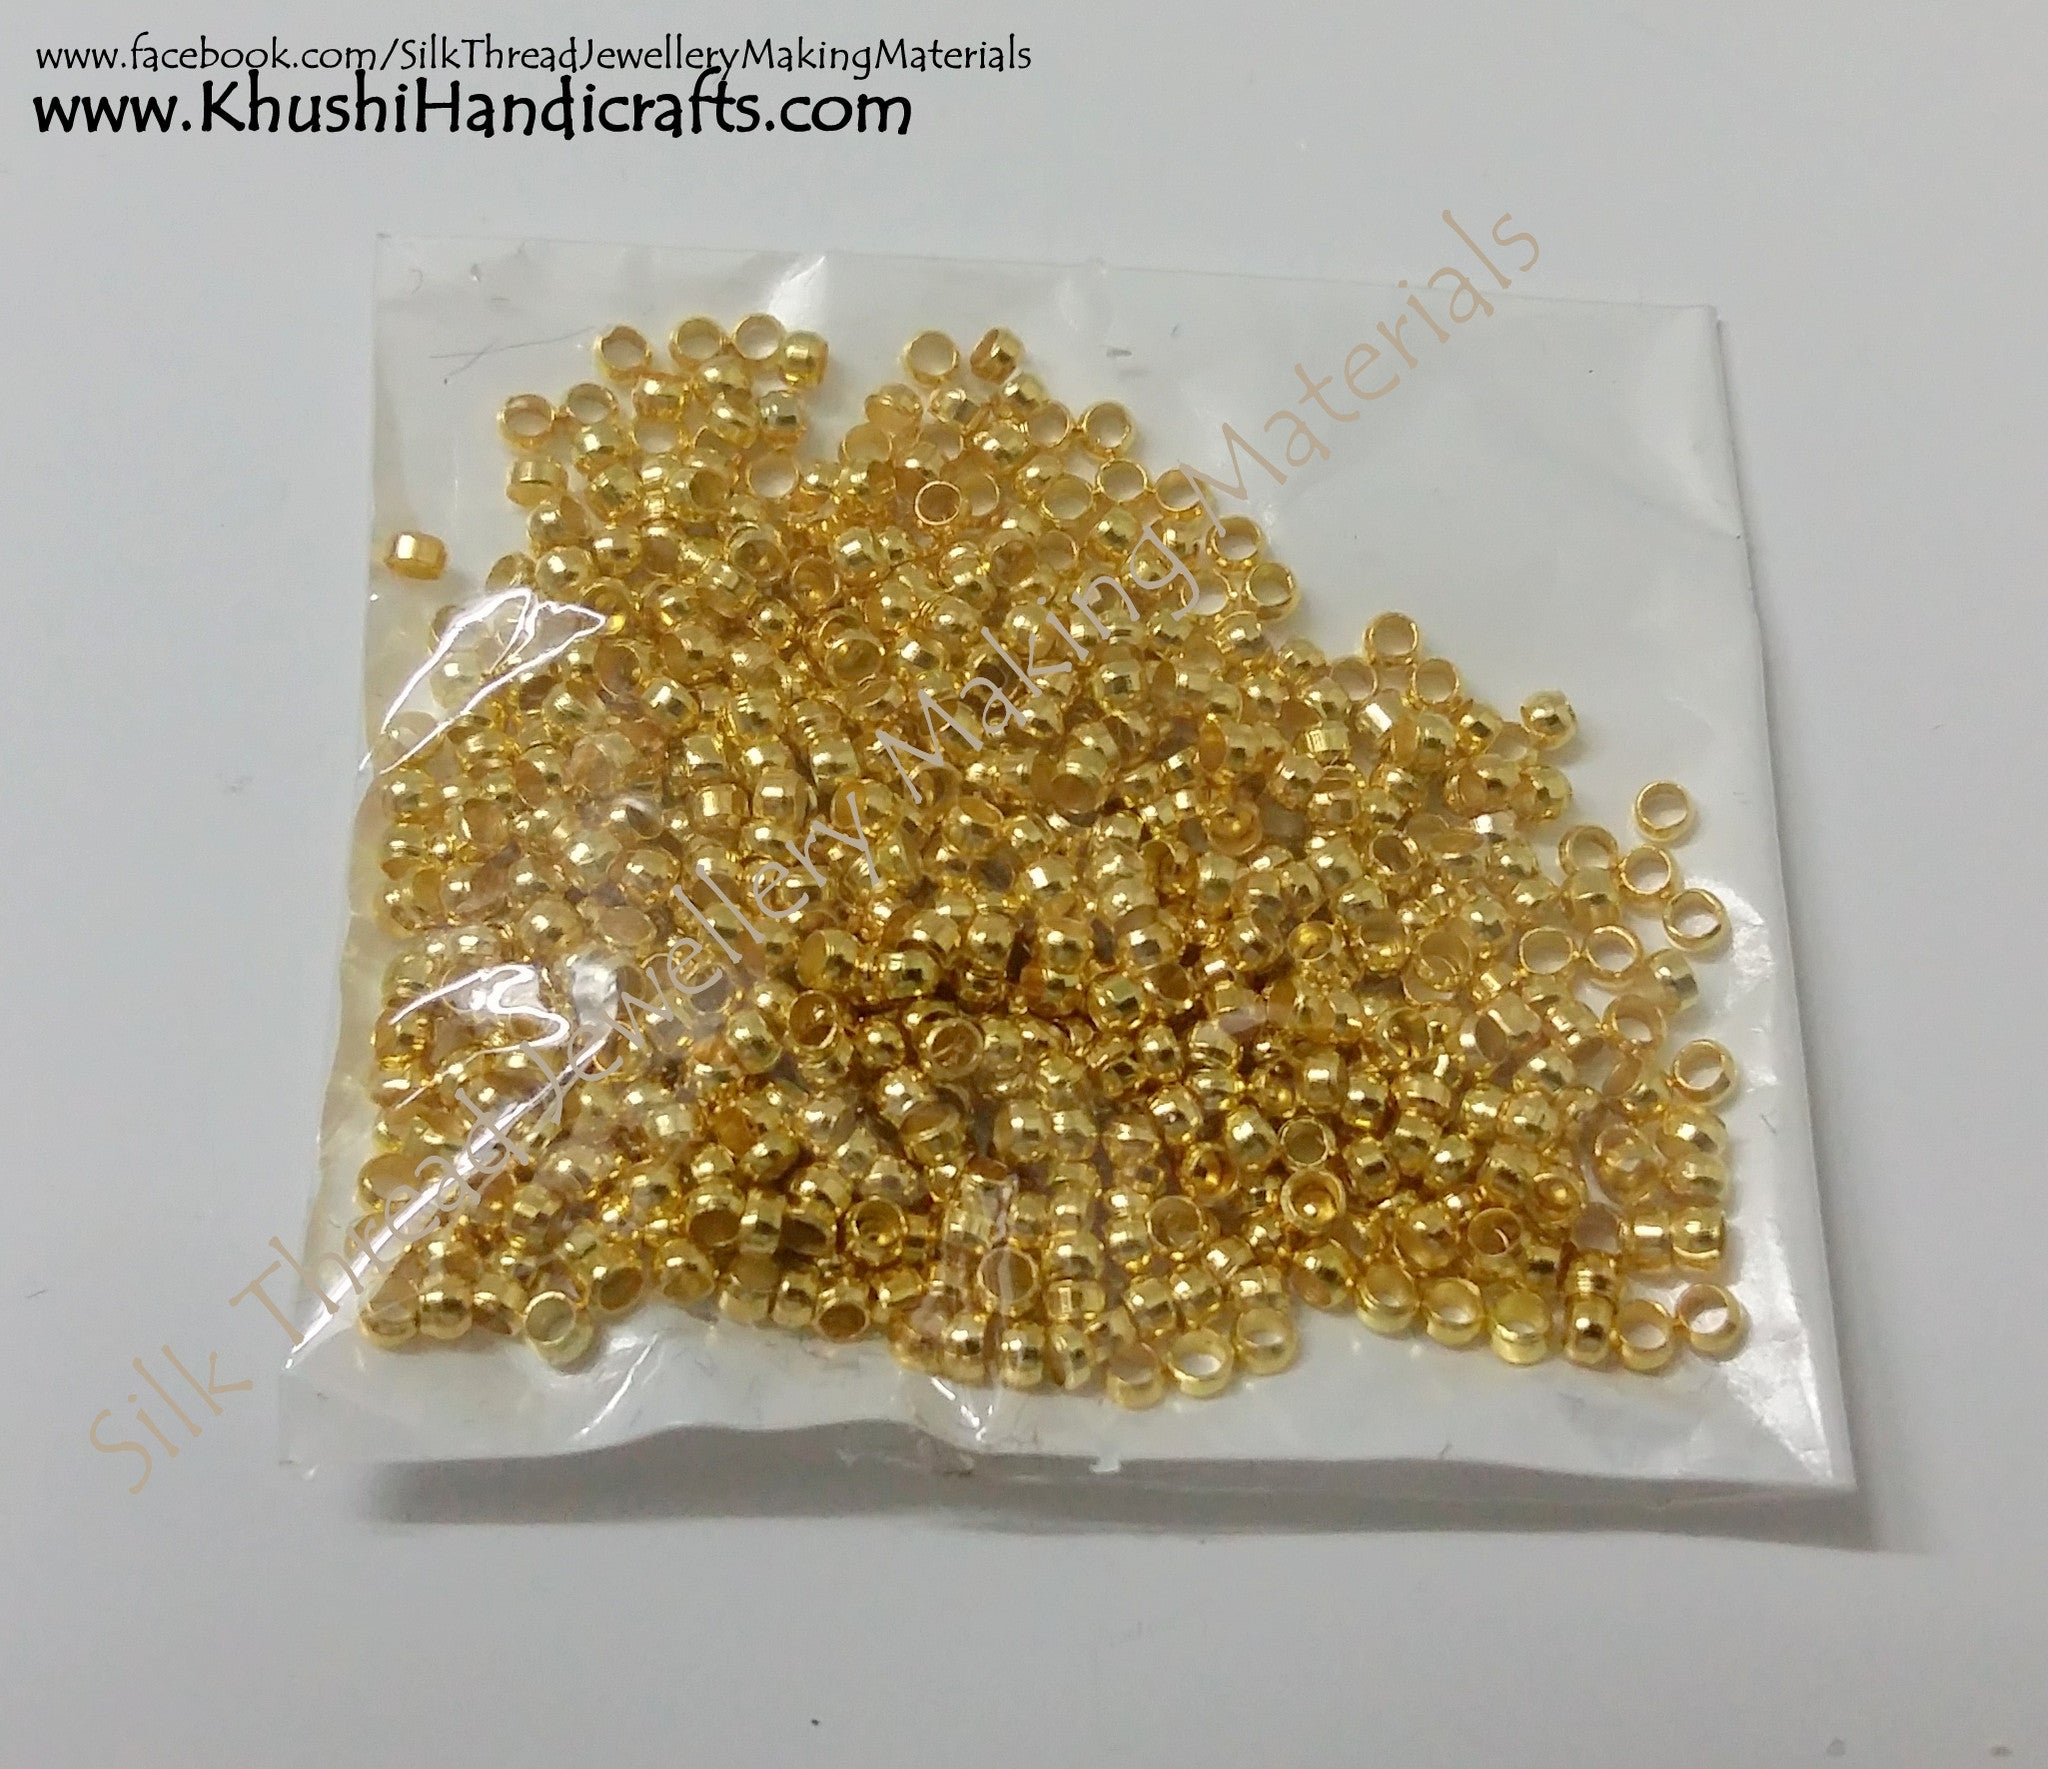 Gear Lock Beads - Khushi Handmade Jewellery